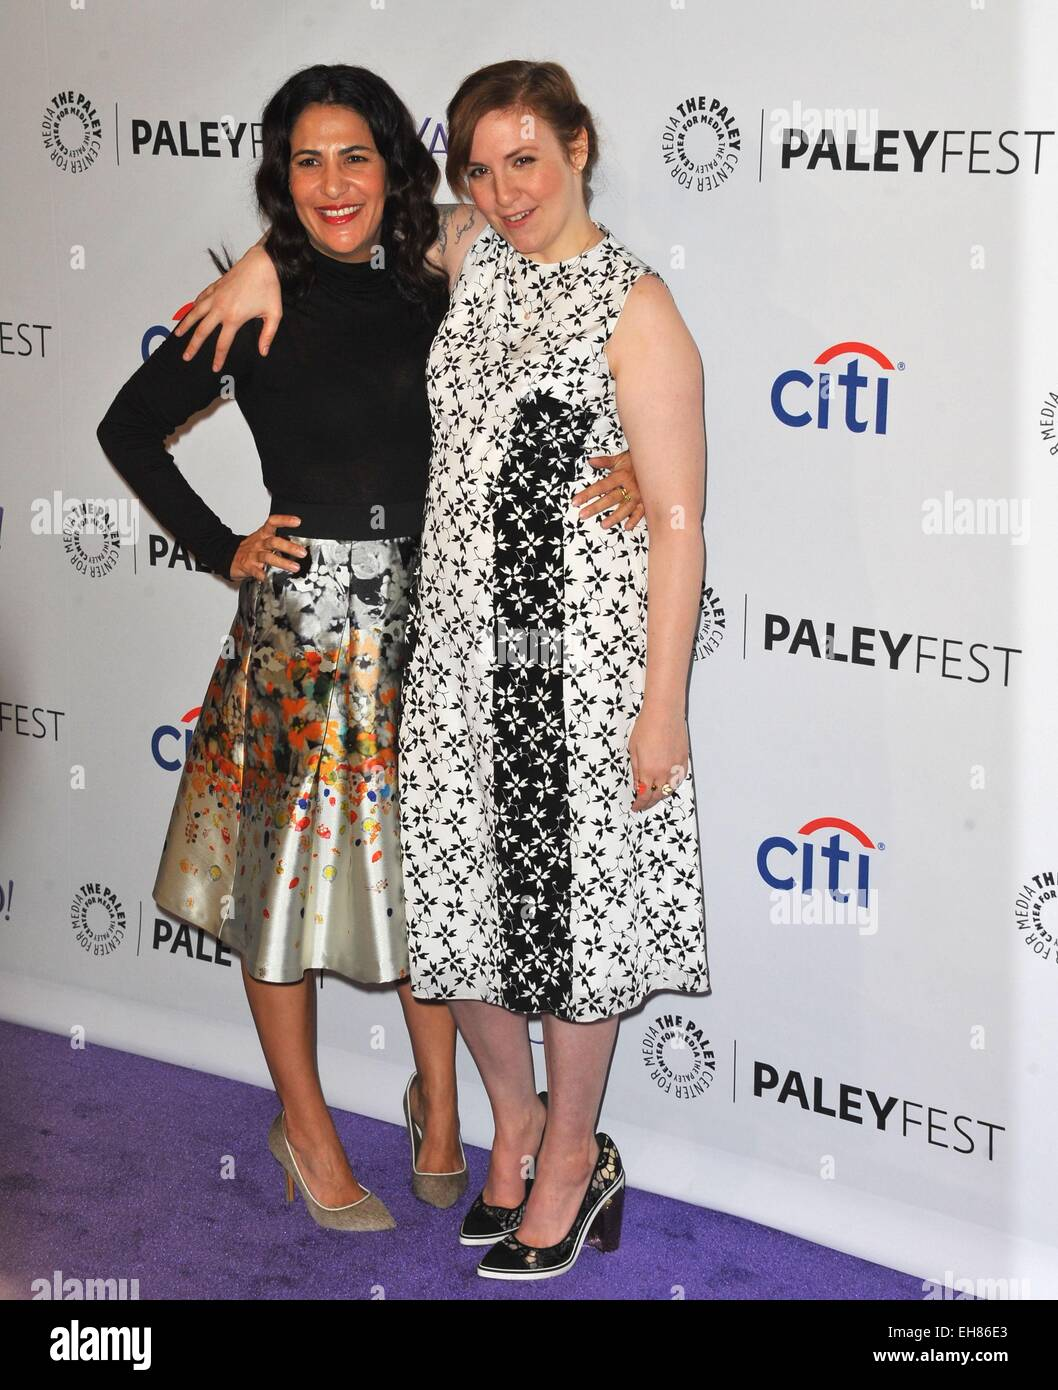 Los Angeles, CA, USA. 8th Mar, 2015. Jenni Kenner, Lena Dunham at arrivals for 32nd Annual PALEYFEST Honors HBO's - Stock Image